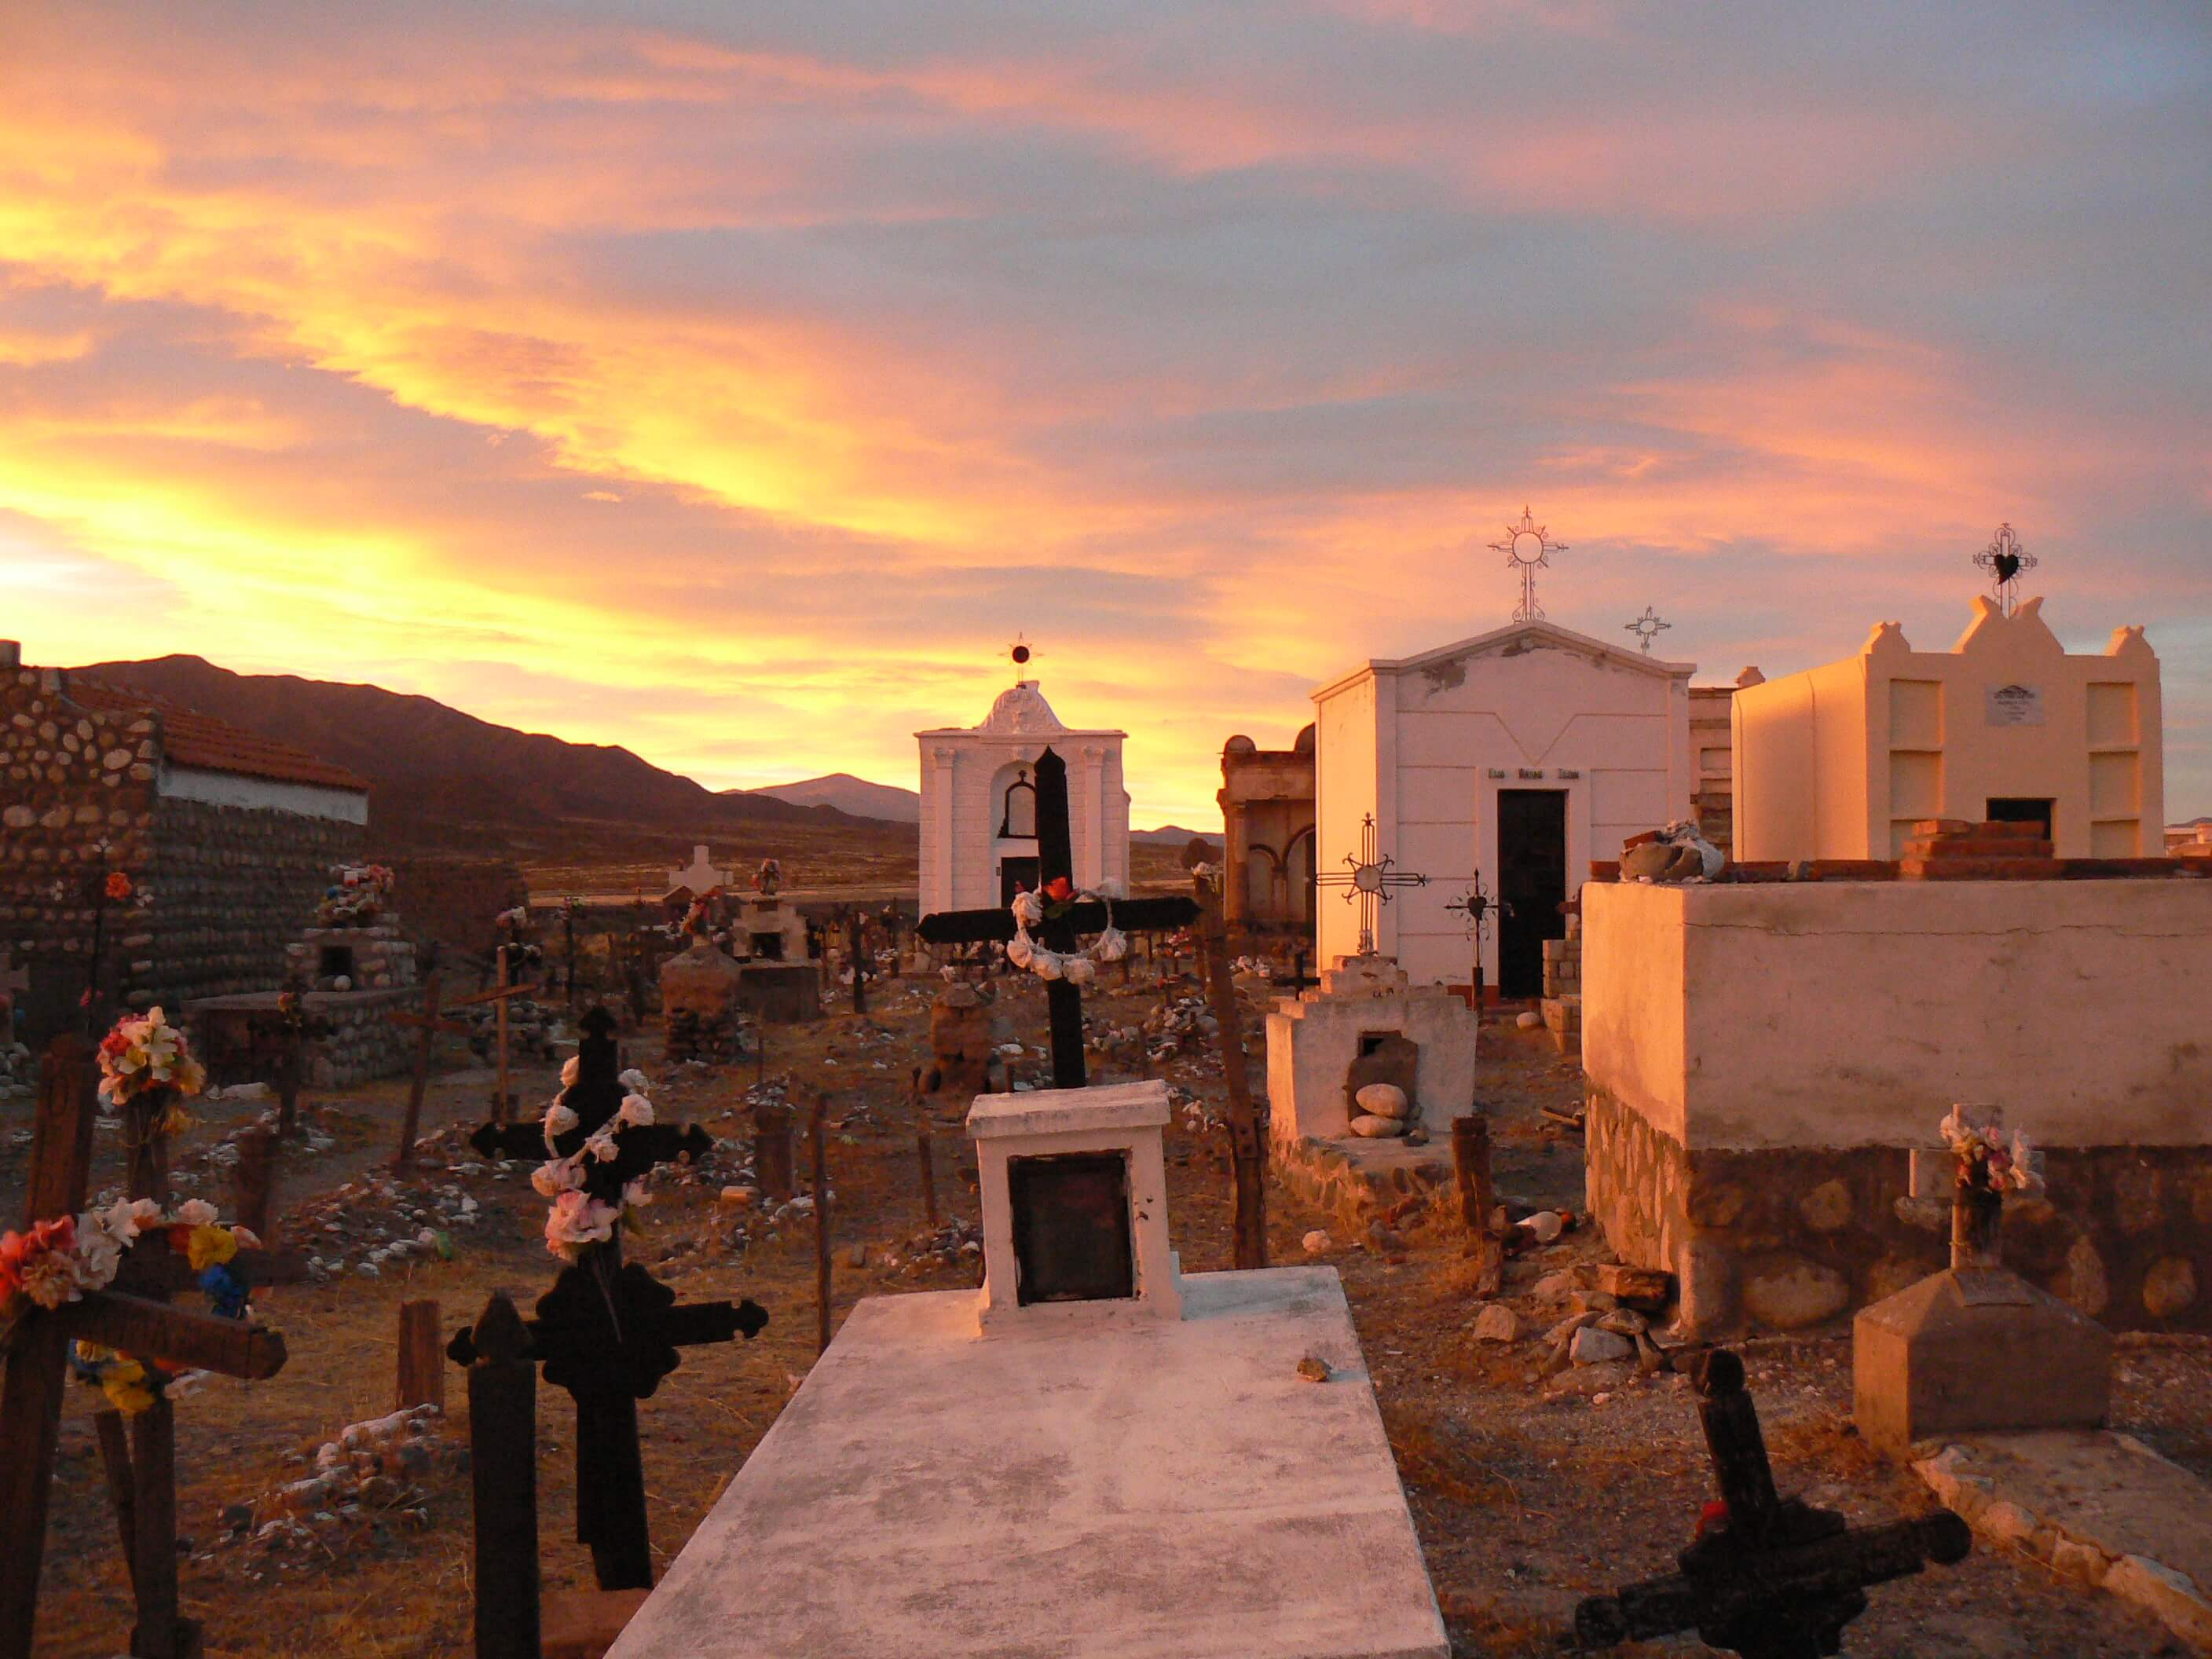 Sundown in a Cachi cemetry